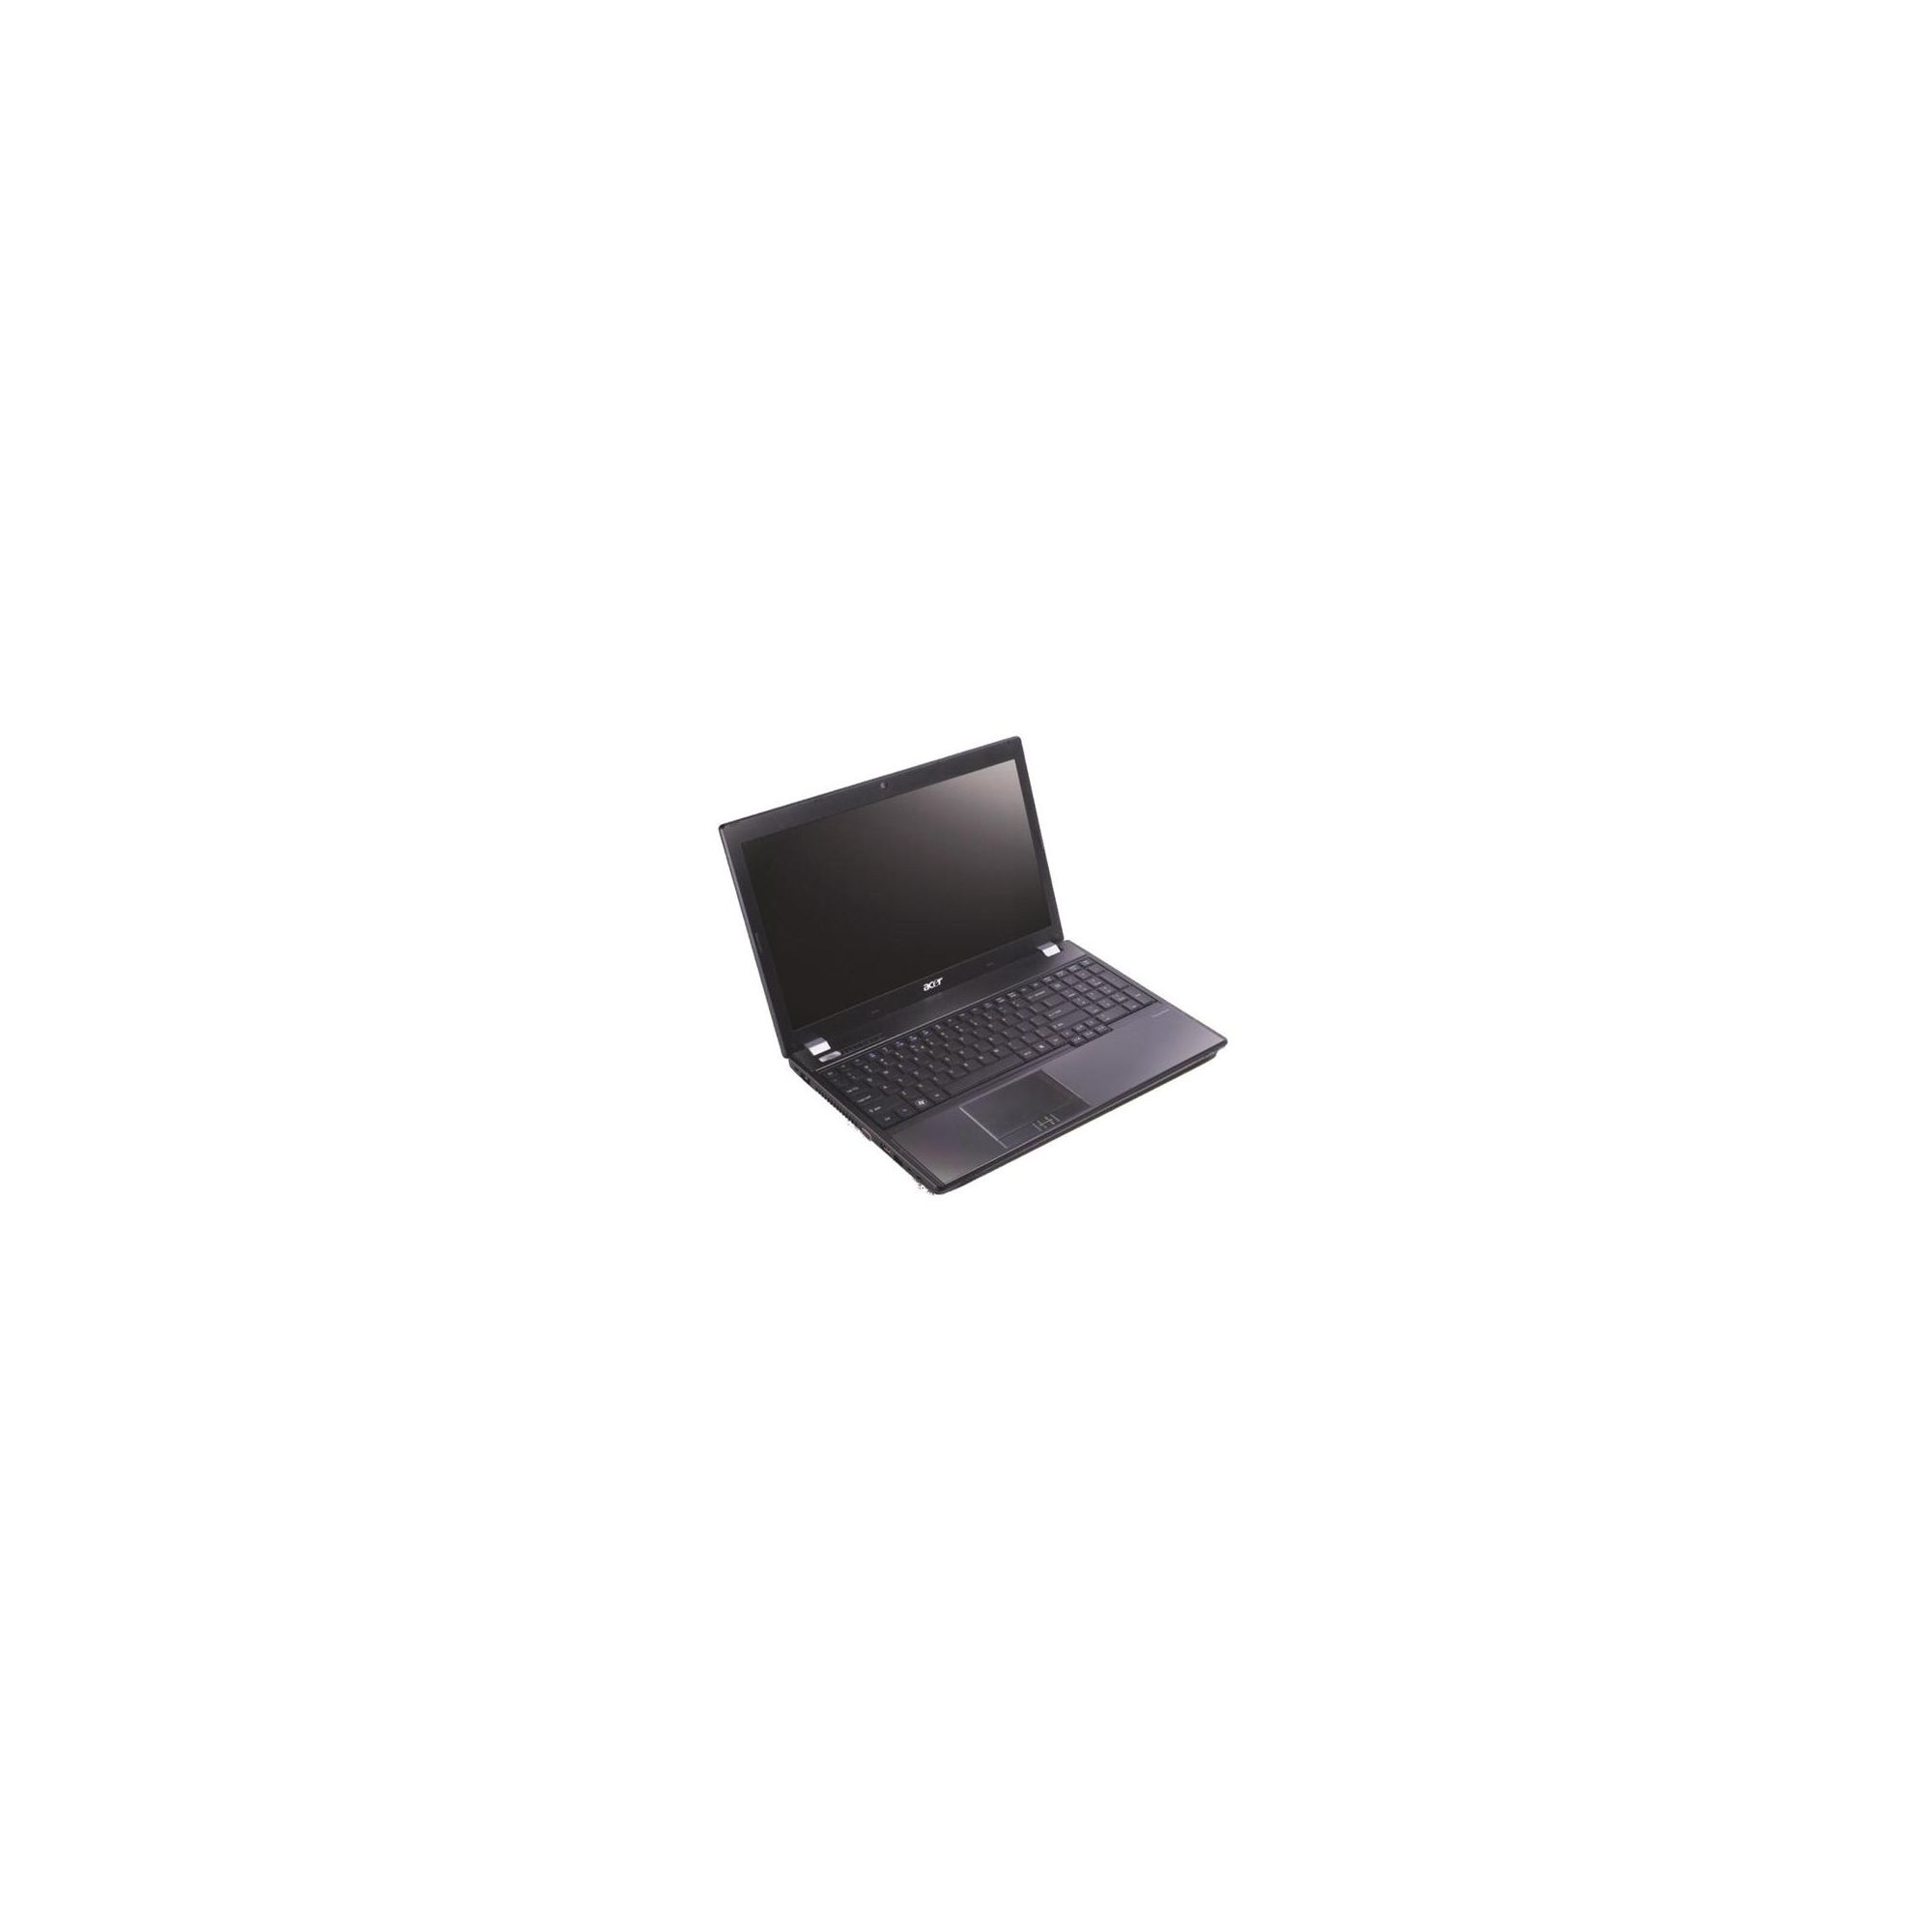 Acer TravelMate TM5760-32322G32Mnsk (15.6 inch) Notebook Core i3 (2328M) 2.2GHz 2GB 320GB DVD-SM DL WLAN Webcam Windows 7 Pro 64-bit/32-bit Dual Load at Tesco Direct